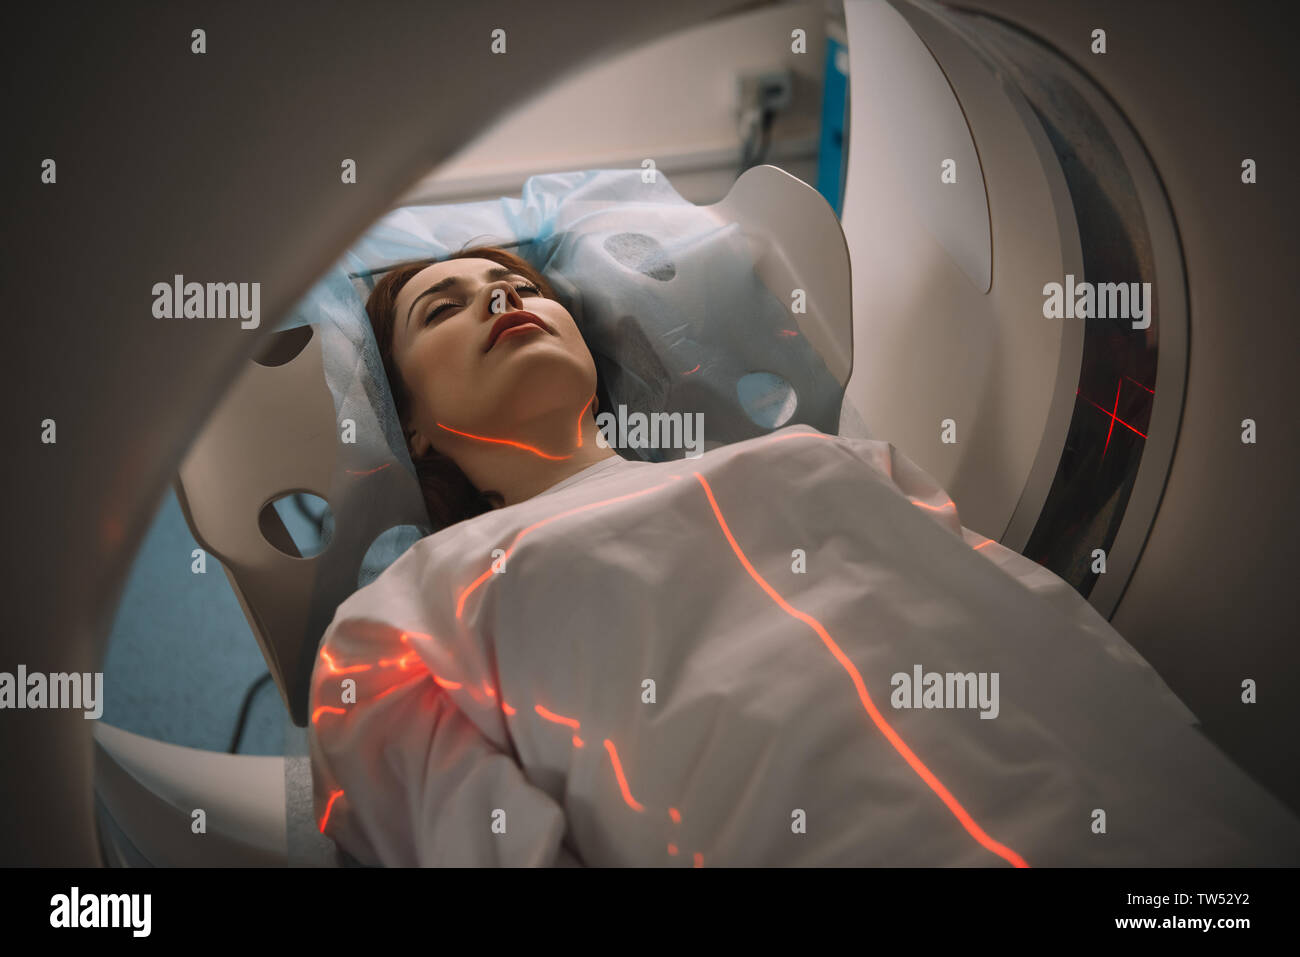 beautiful woman lying on ct scanner bed during tomography test in hospital Stock Photo